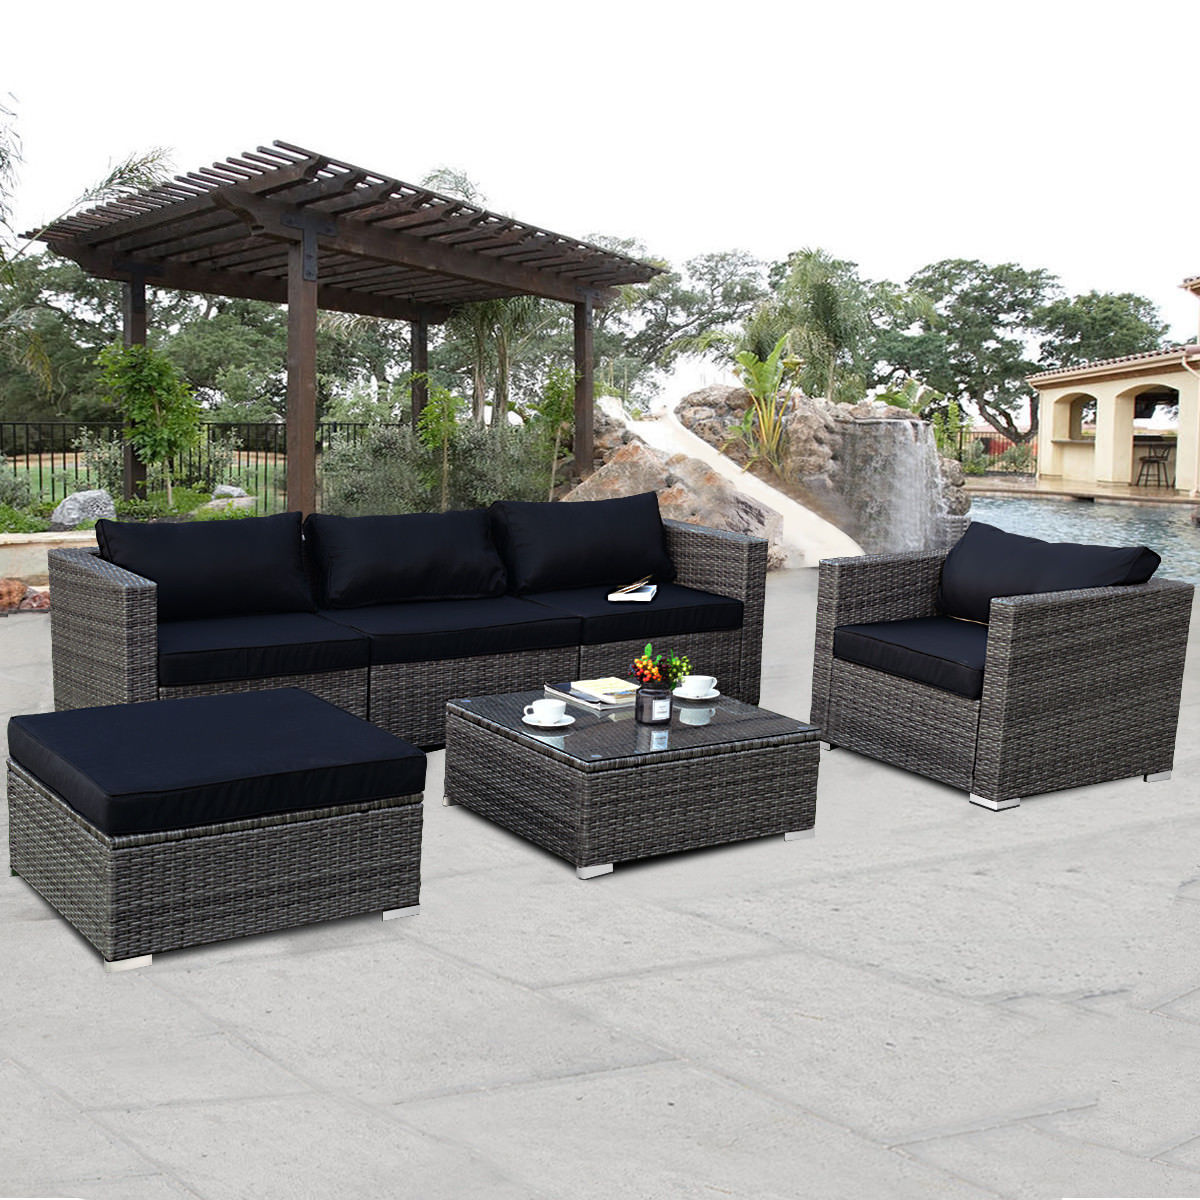 Details About Goplus 6 Piece Rattan Wicker Patio Furniture Set Sectional Sofa Couch Yard Table